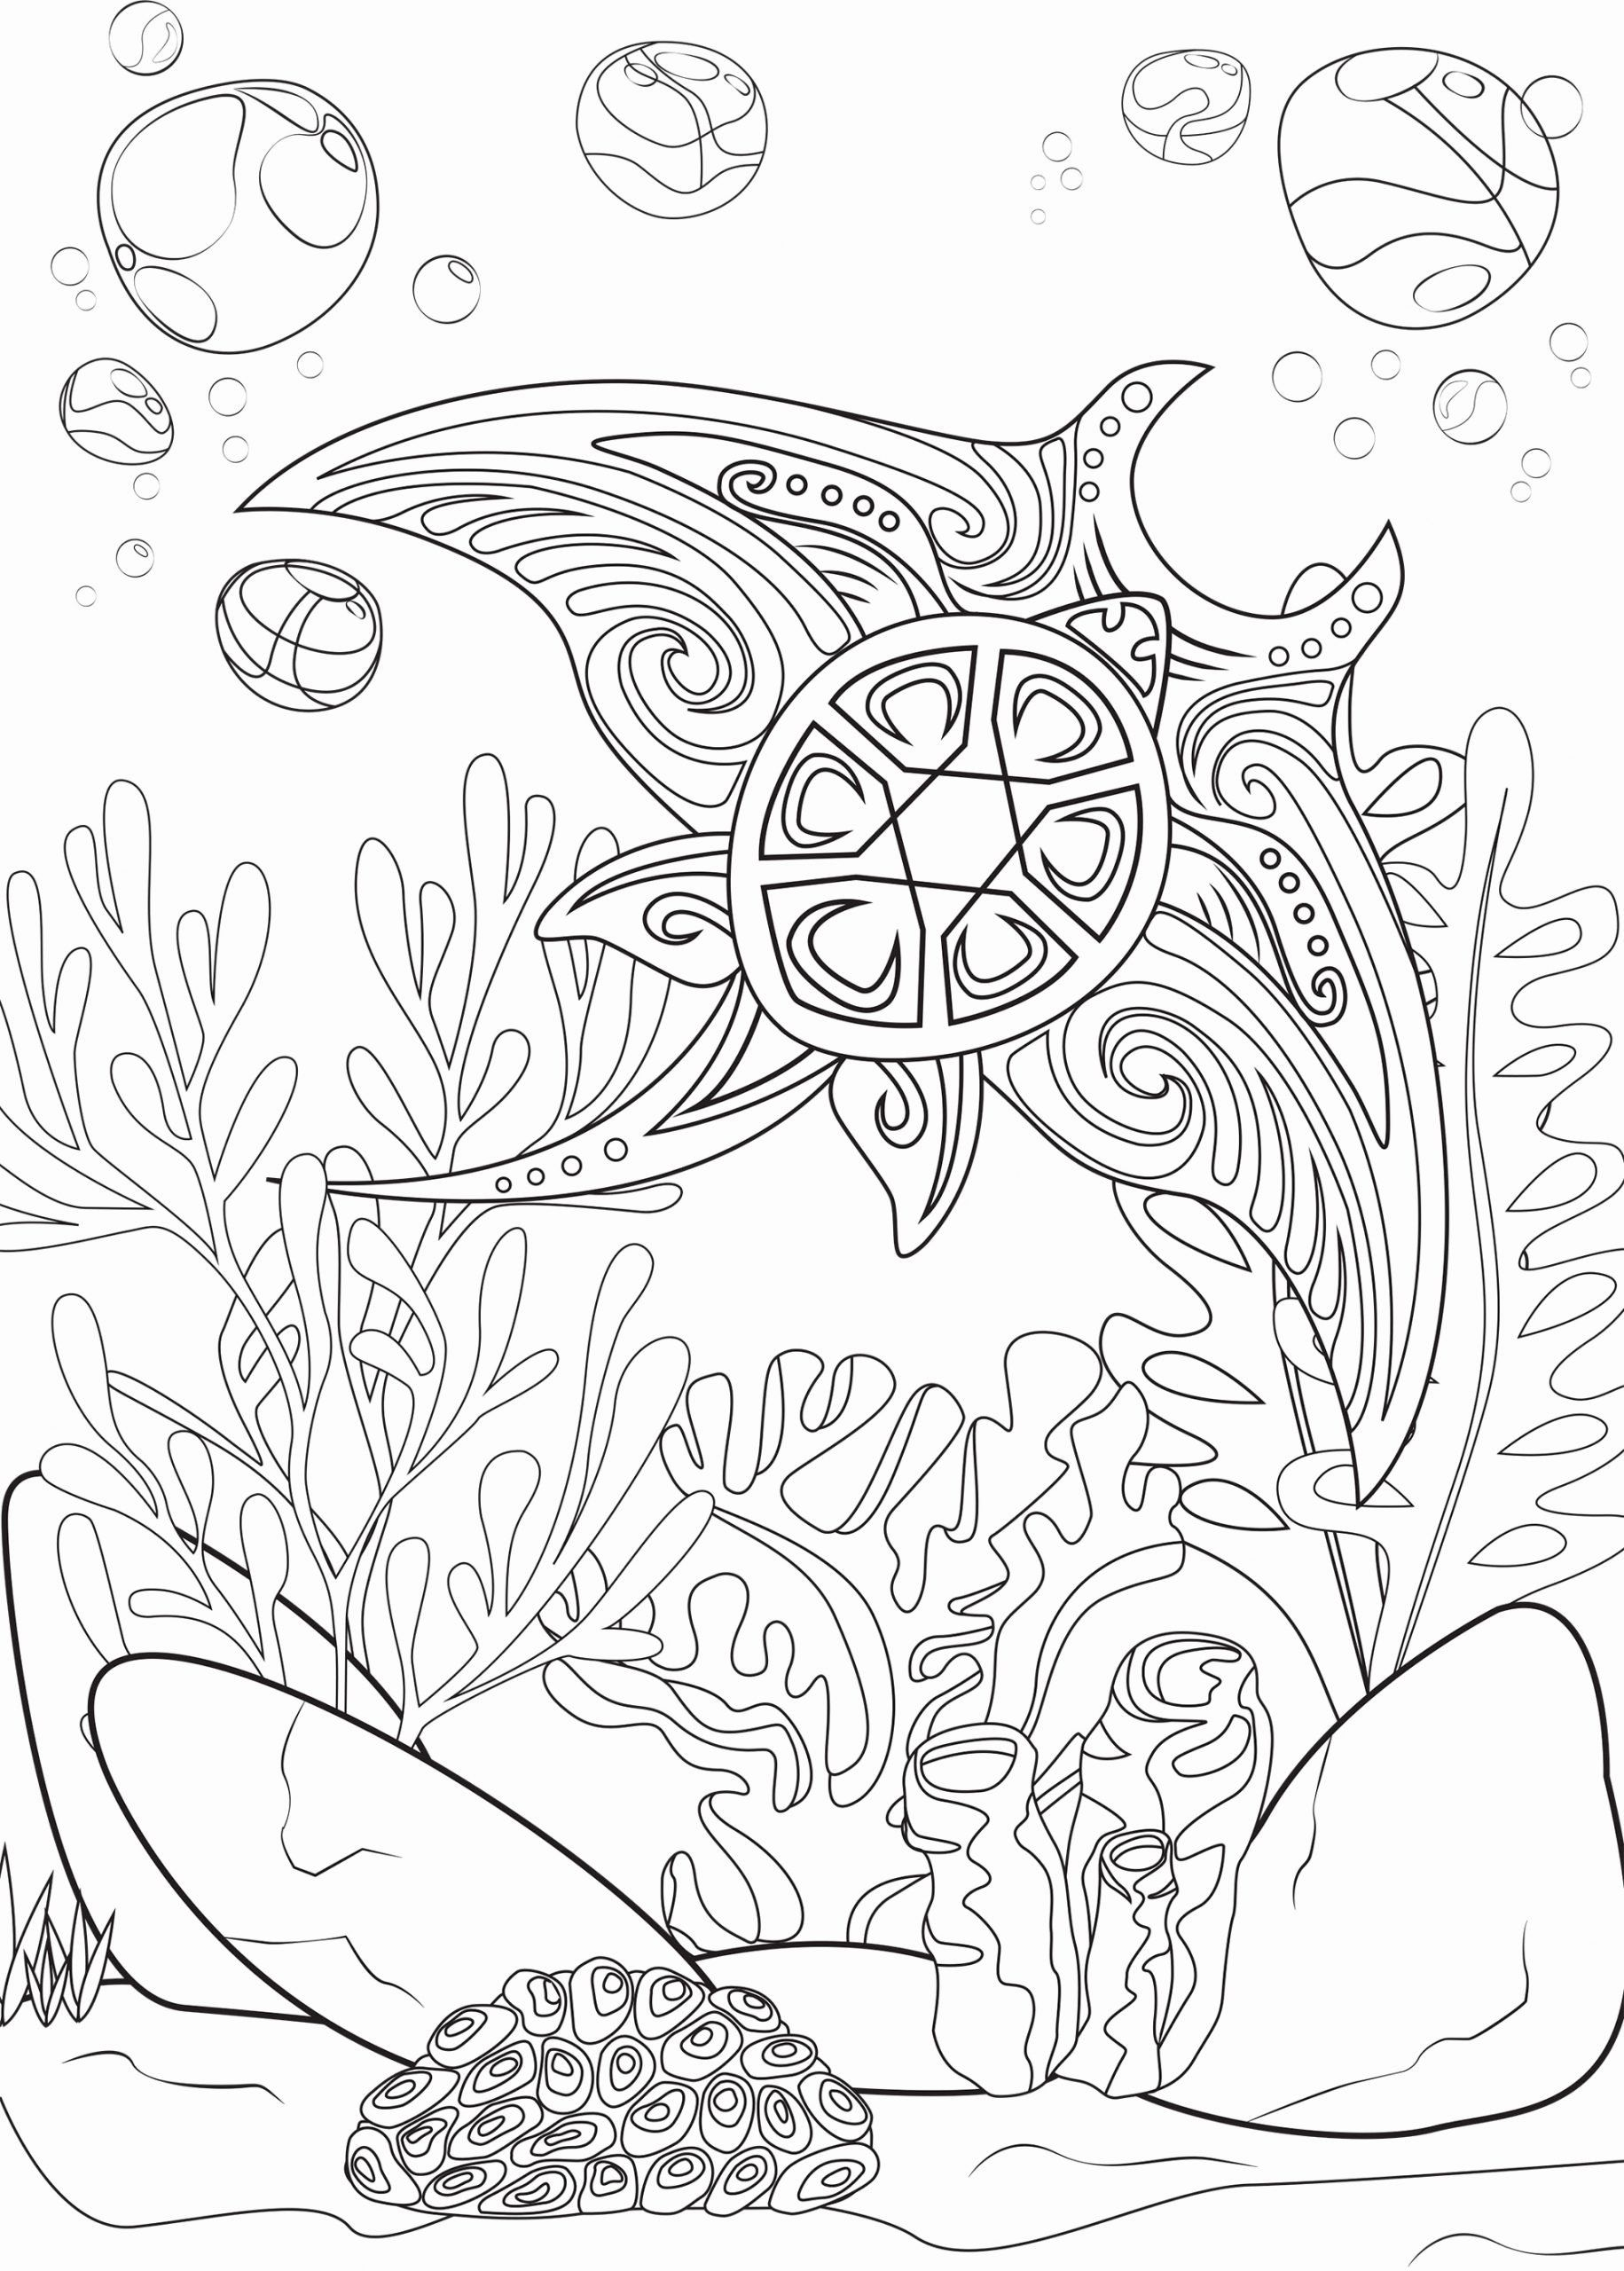 Pin On Best Coloring Pages For Adult